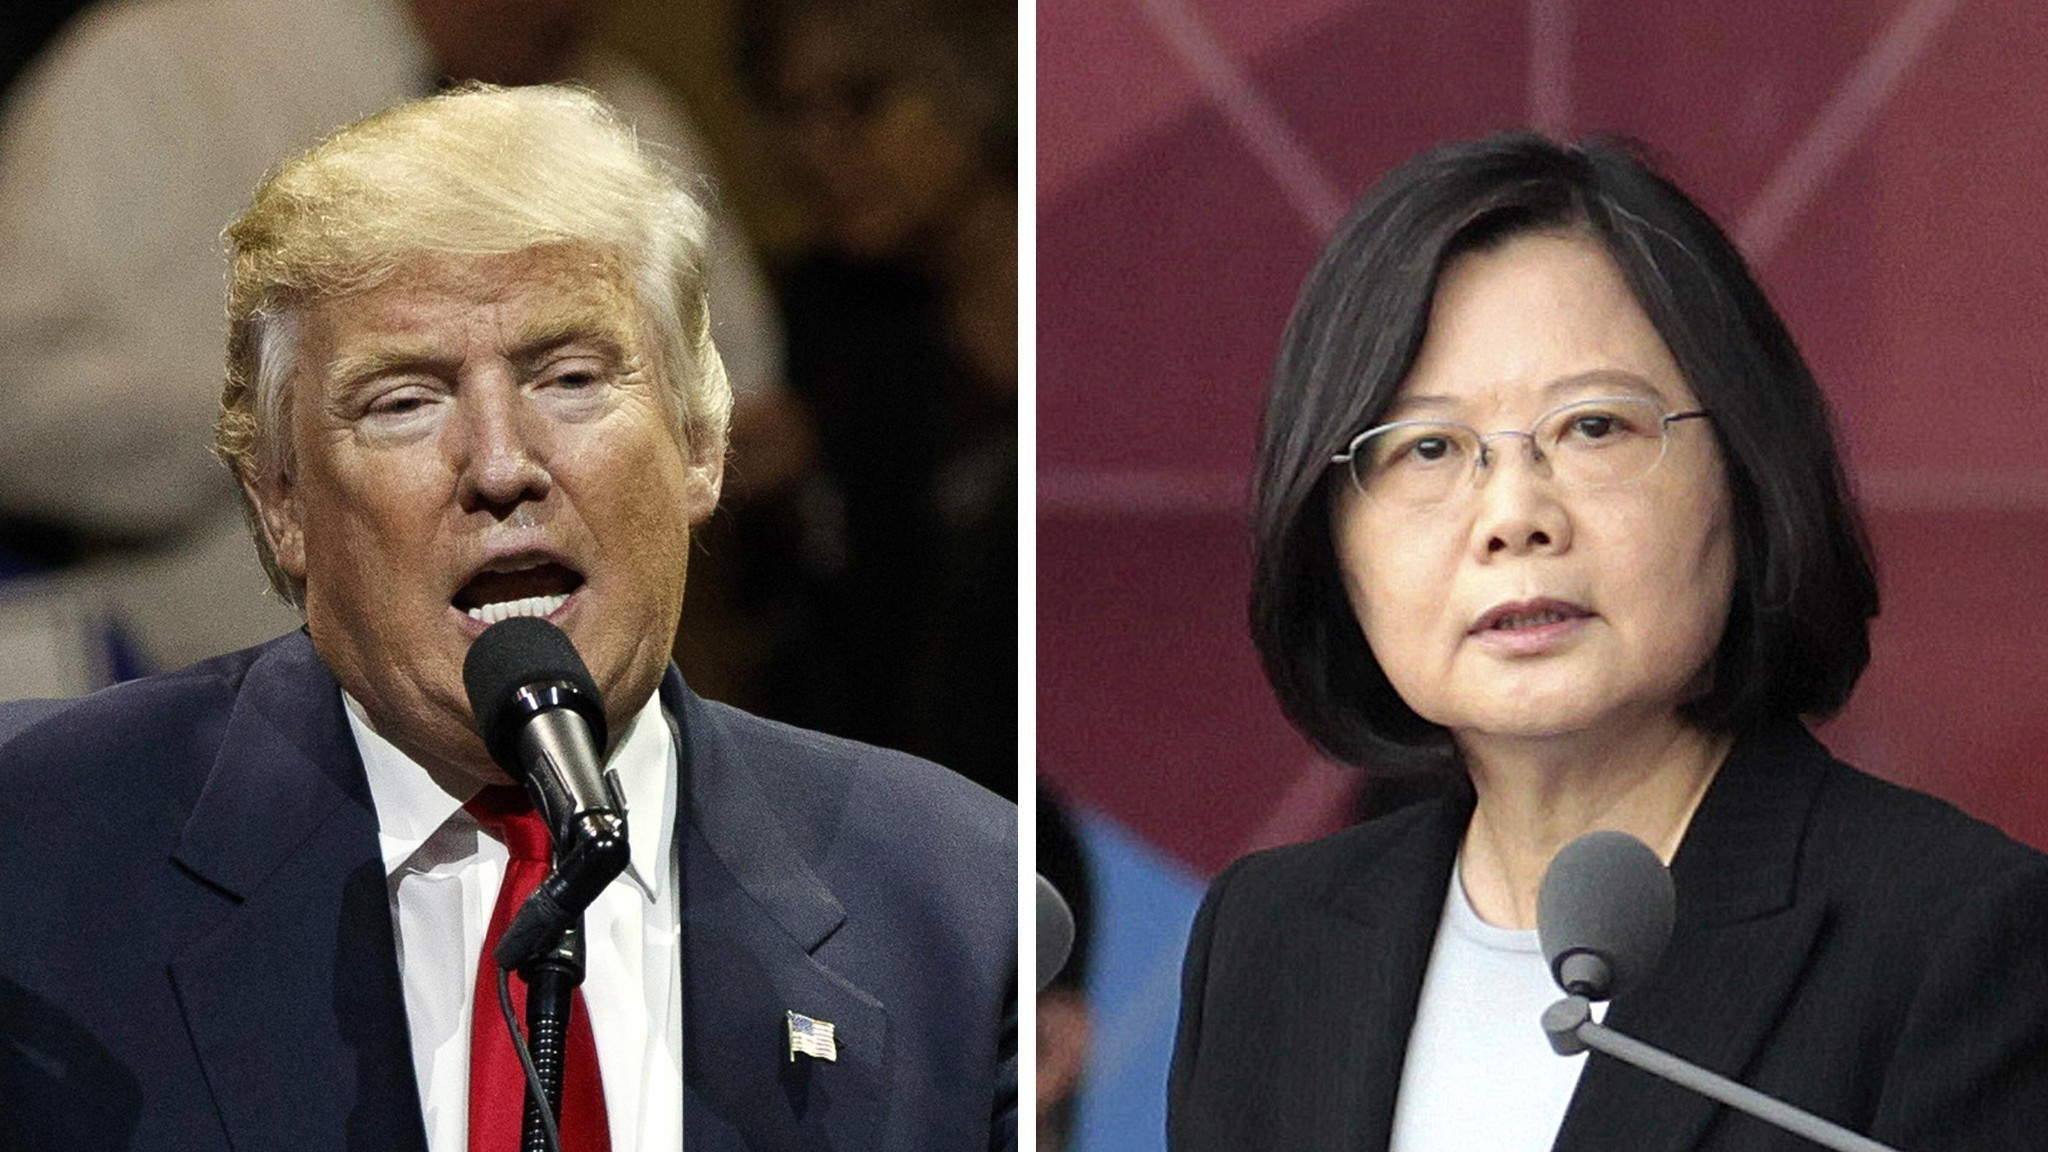 Trump foreign policy faces scrutiny as team defends Taiwan phone call